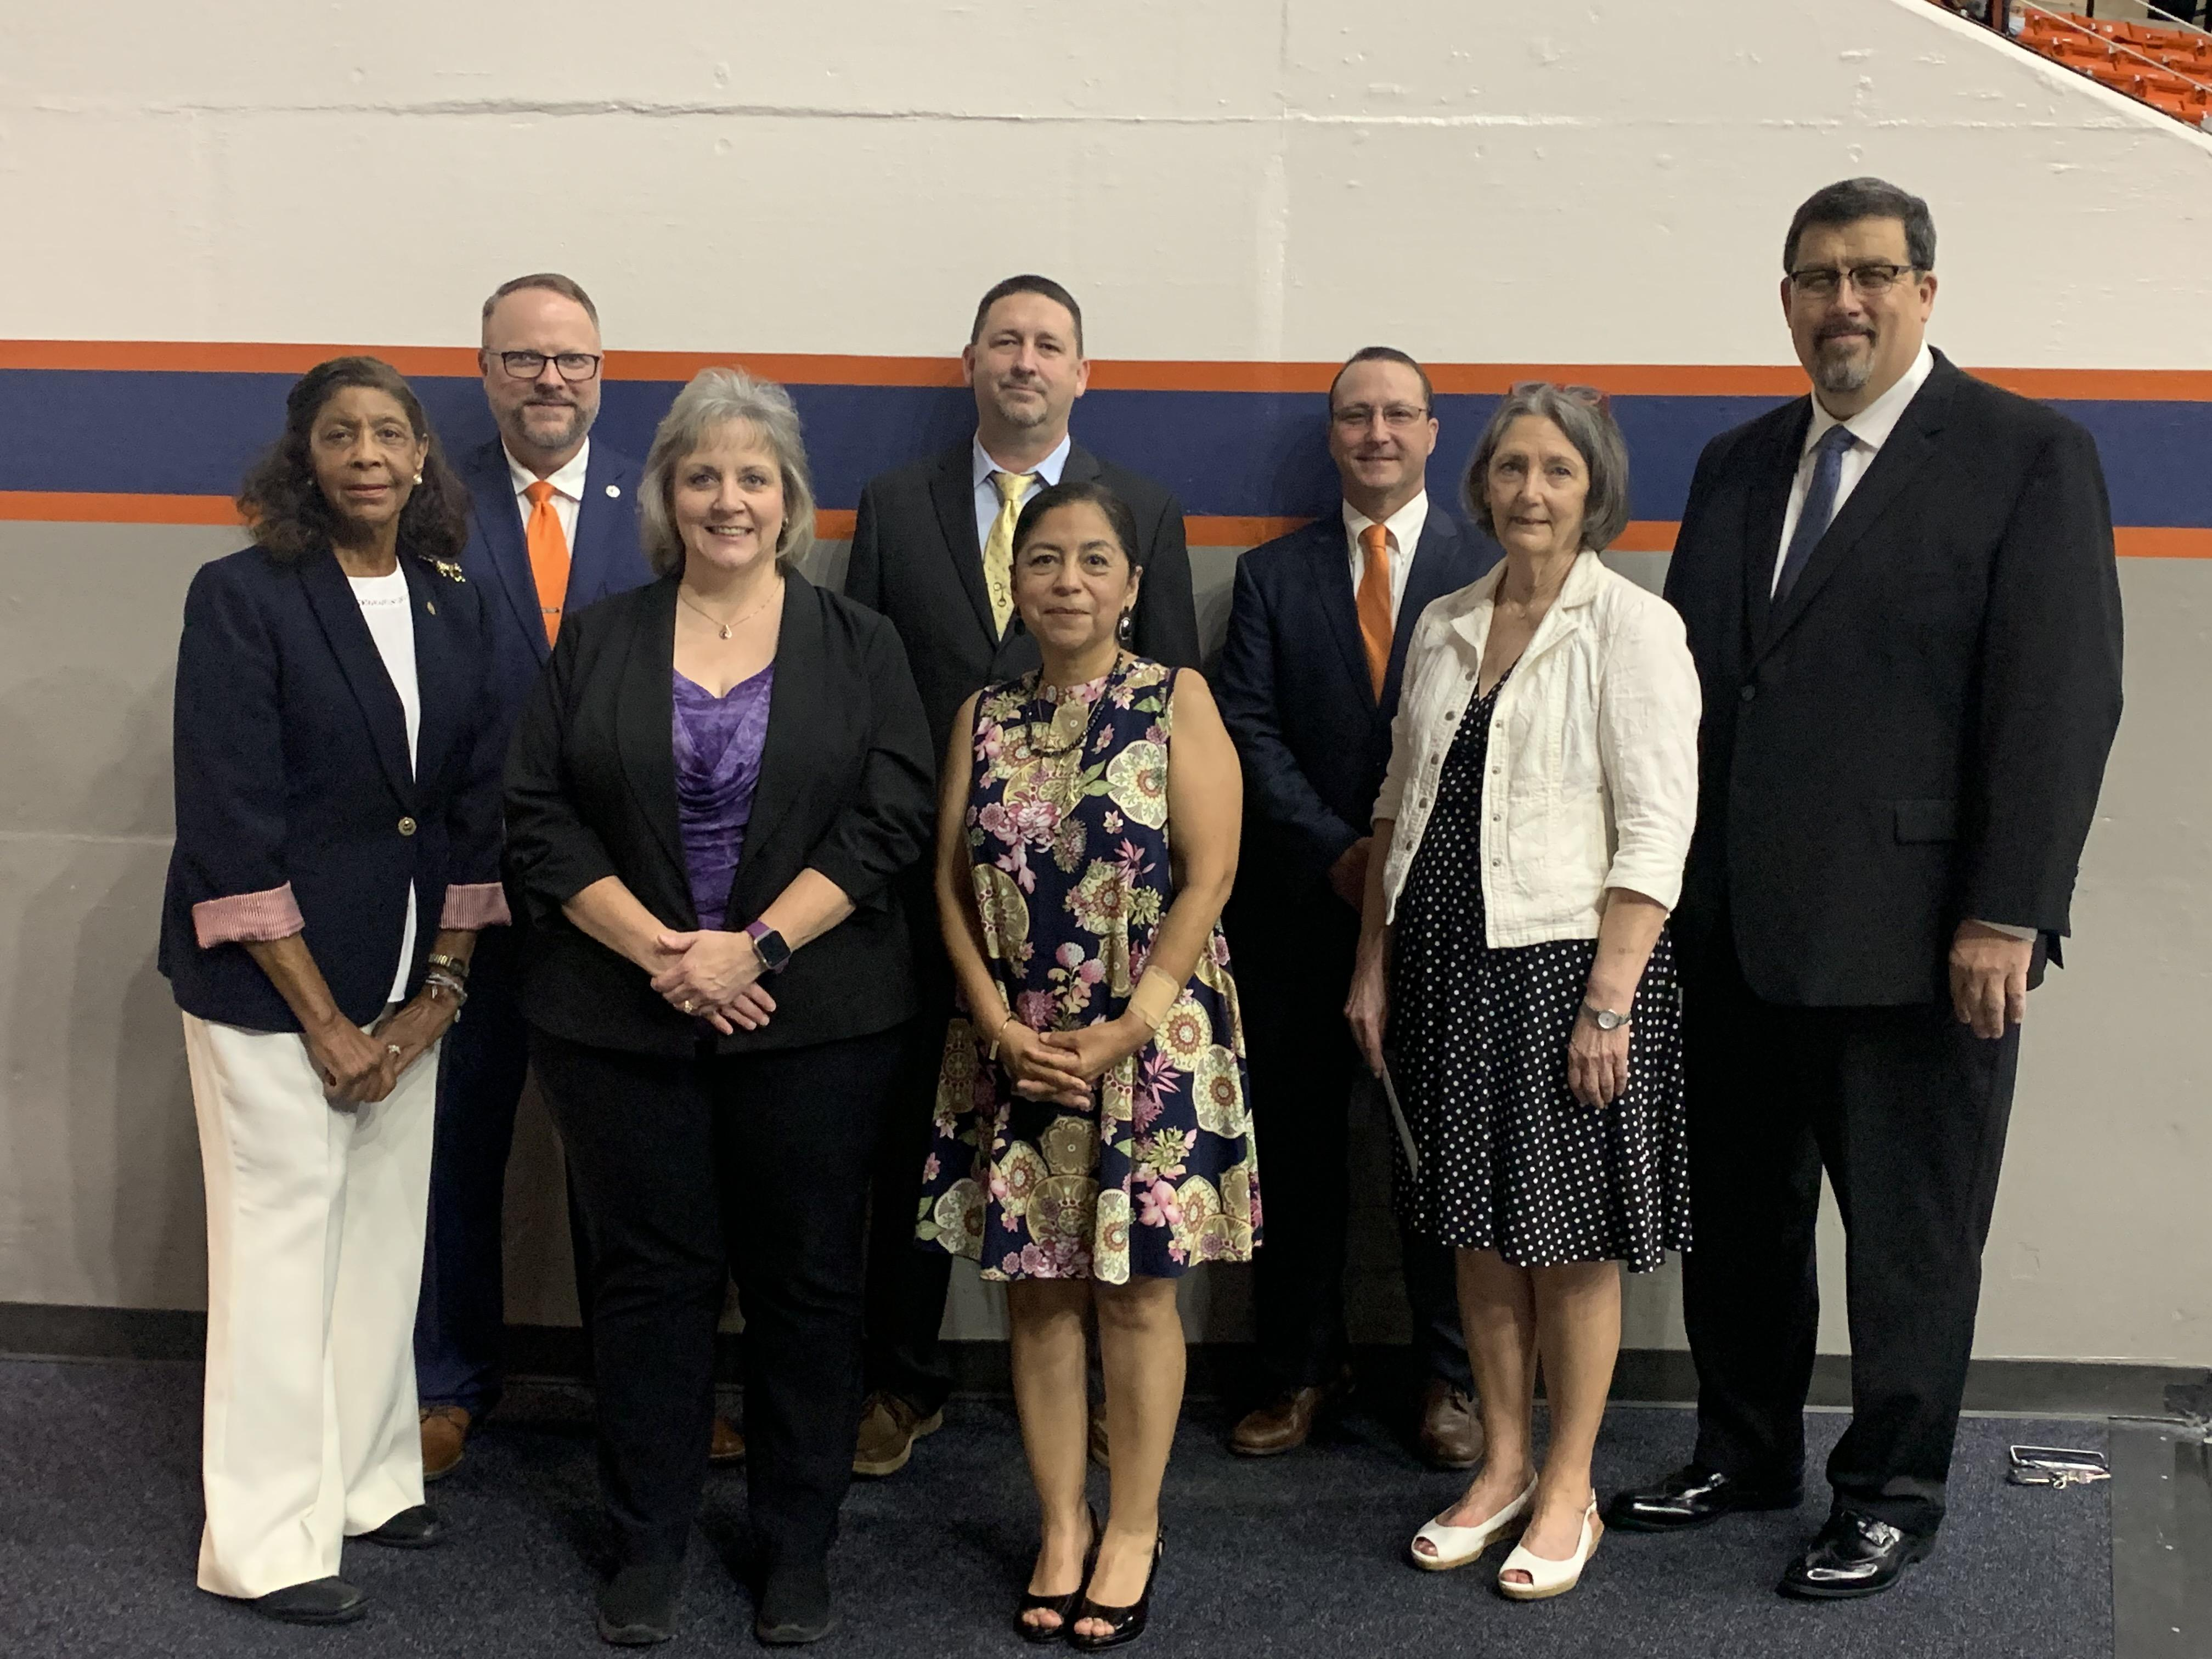 Trinity ISD Board of Trustees and Dr. Kaufman.